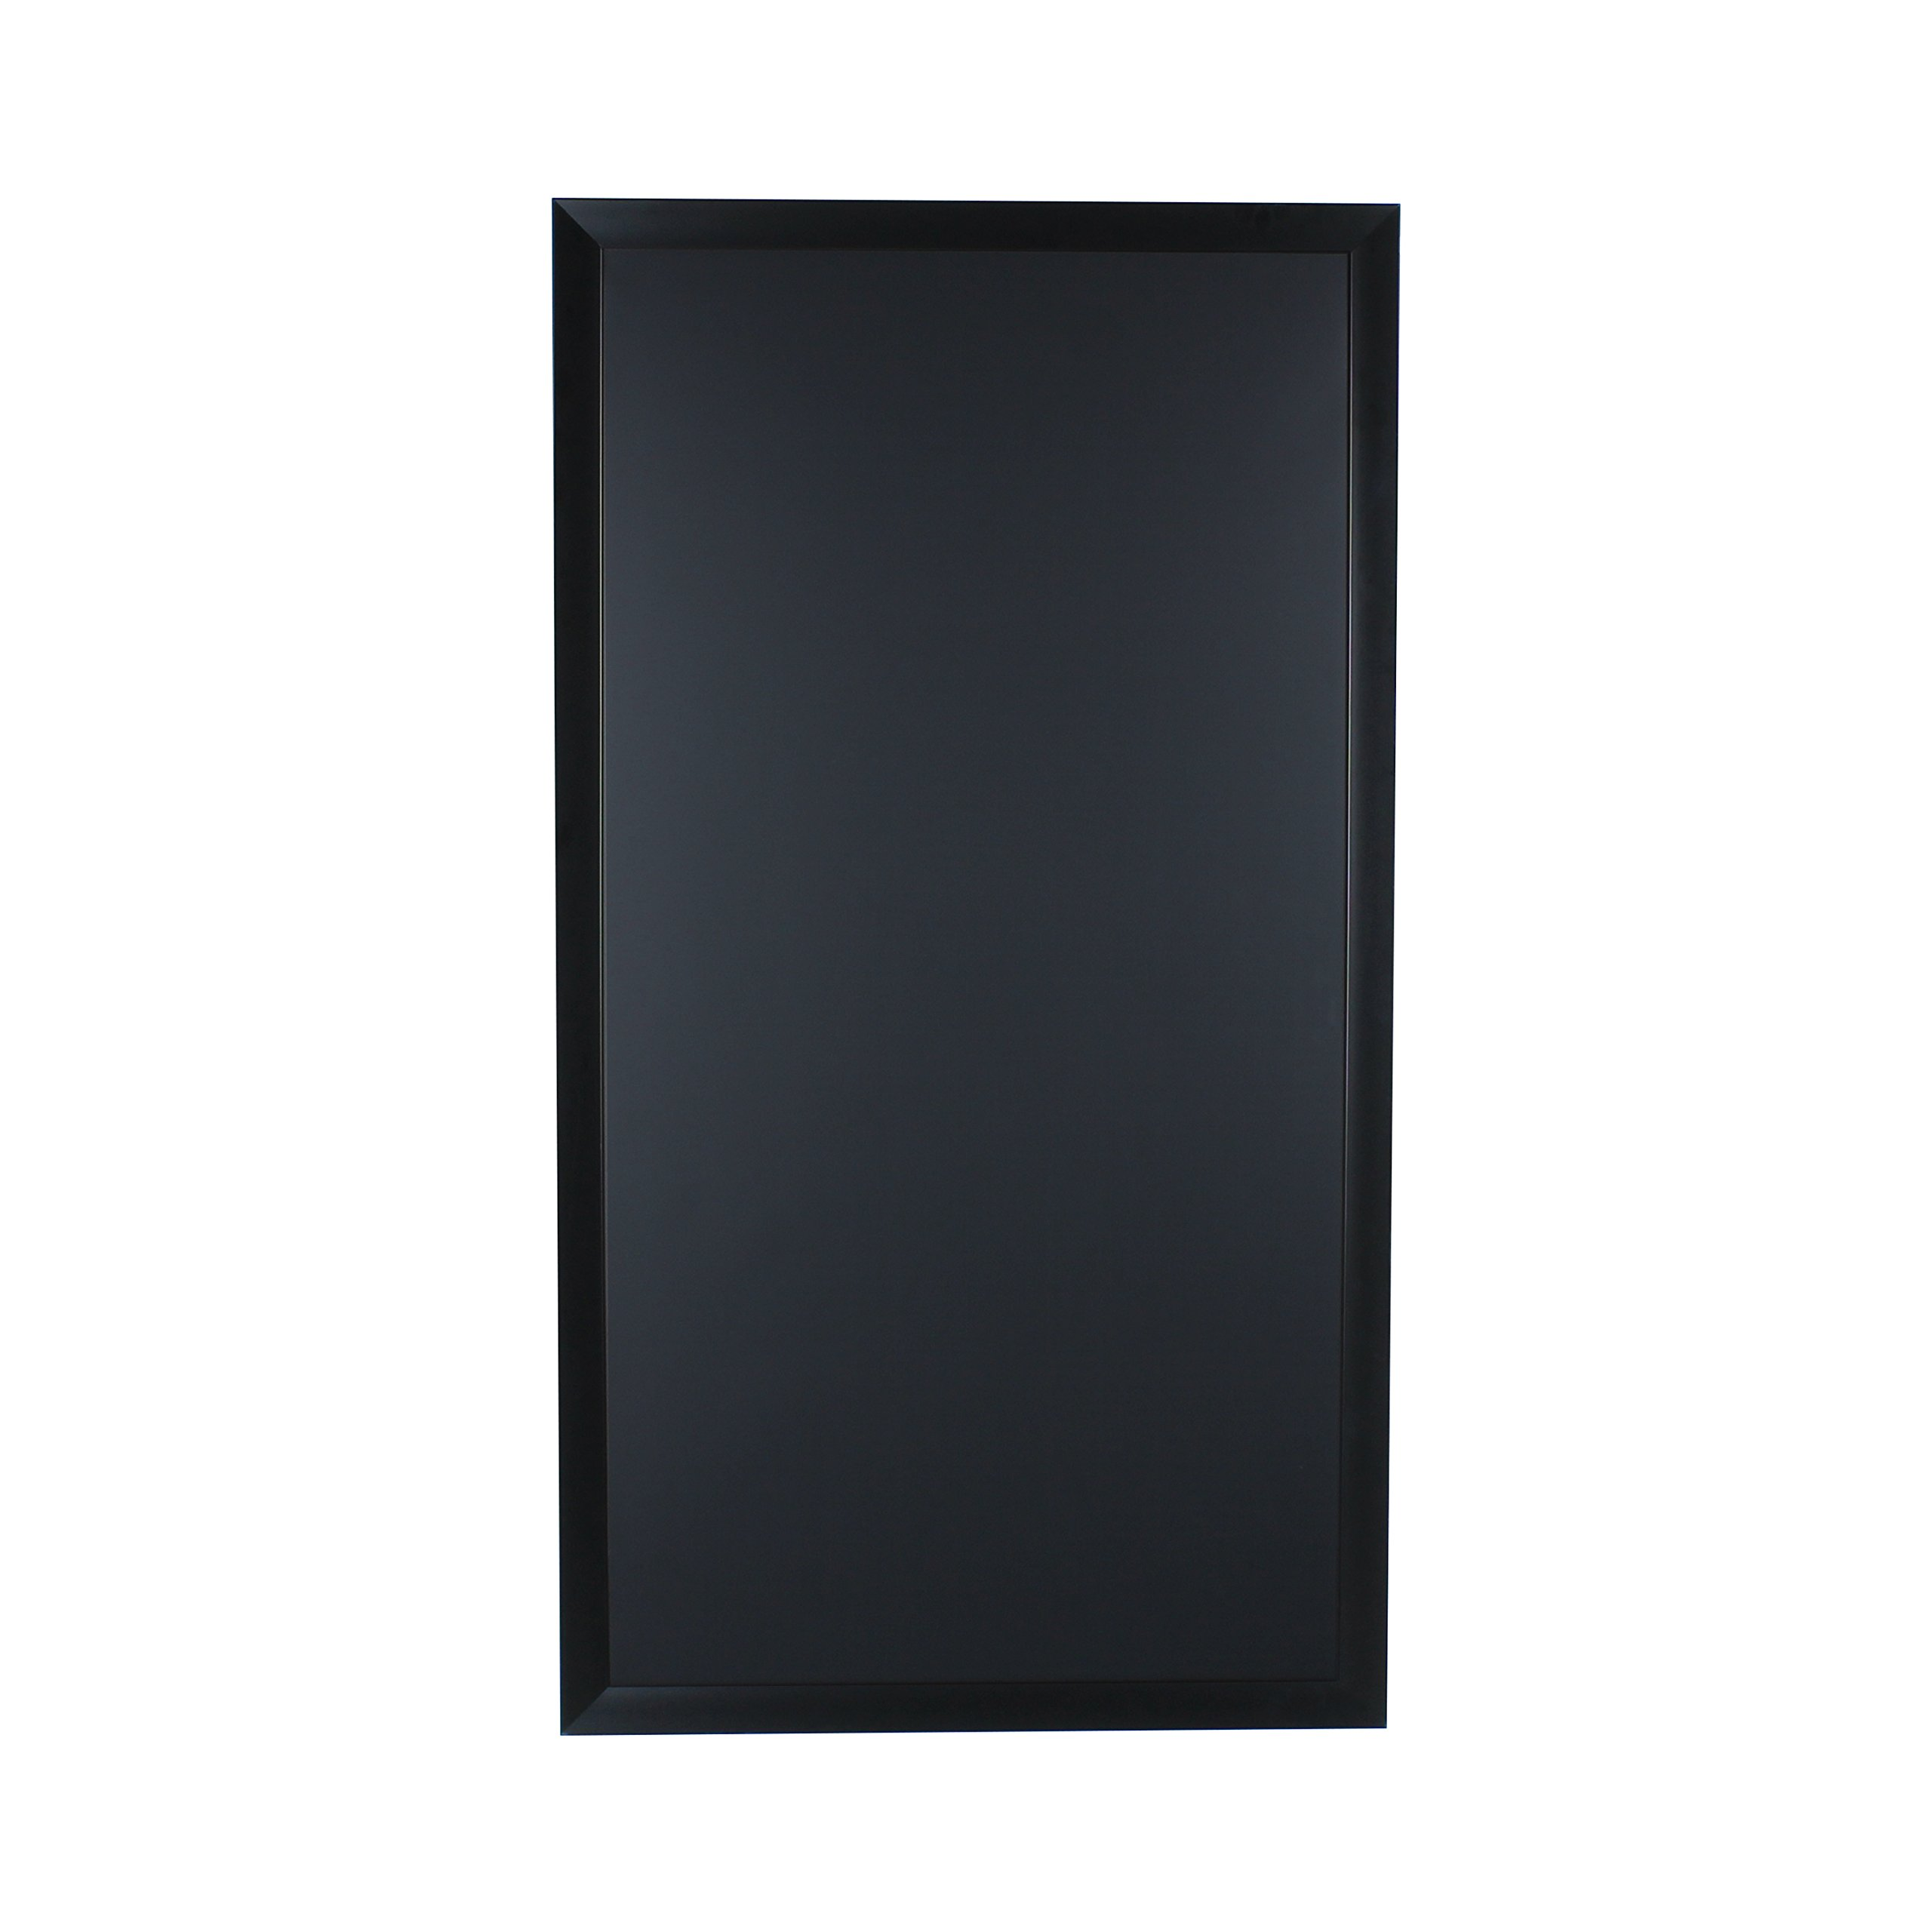 DesignOvation Beatrice Oversized Framed Magnetic Chalkboard, 30x55, Black by DesignOvation